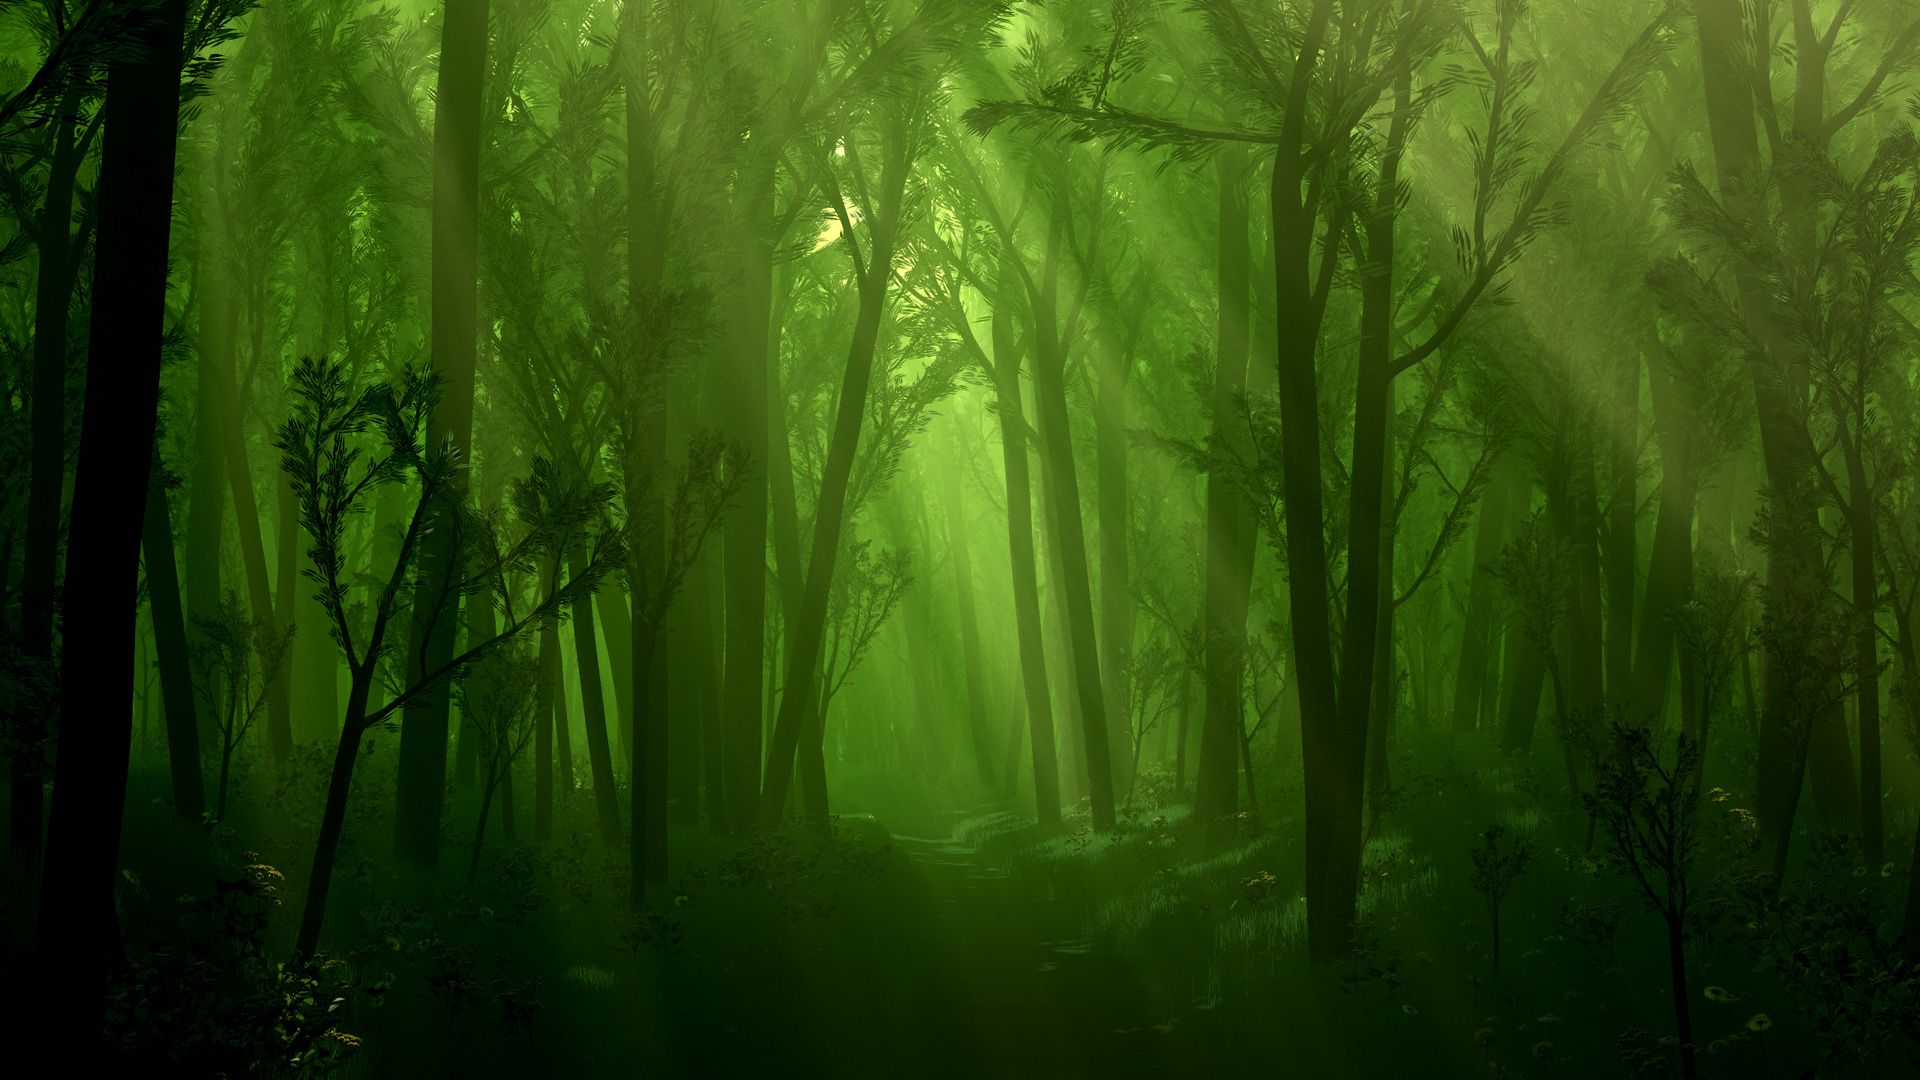 Most Inspiring Wallpaper High Quality Forest - dc55259c7ff8bd5a1ca1dbfff4e01a73  Collection_525963.jpg